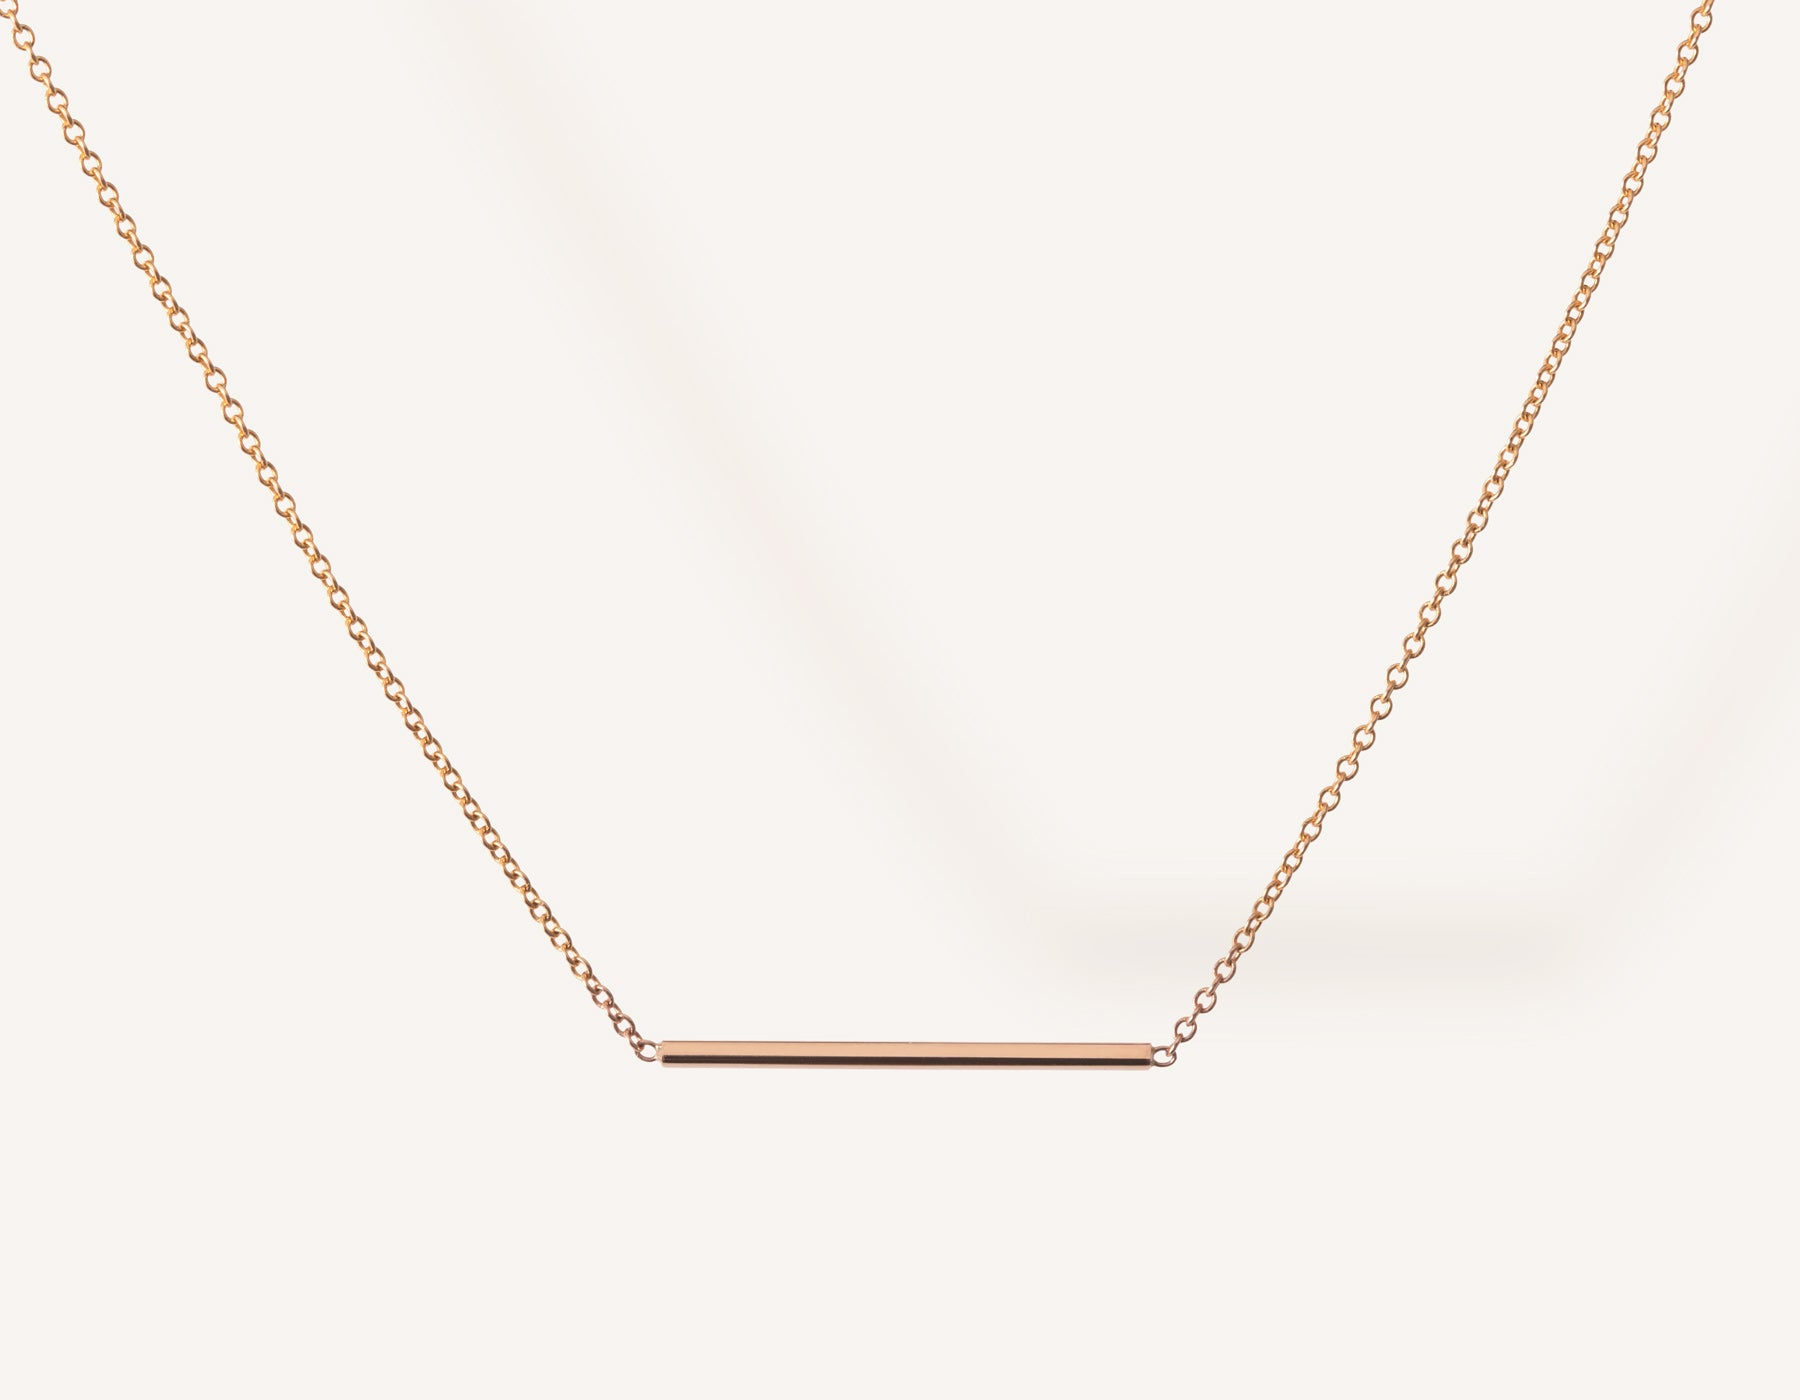 Simple classic Line Necklace 14k solid gold small rectangular bar thin chain spring ring clasp Vrai & Oro minimalist jewelry, 14K Rose Gold